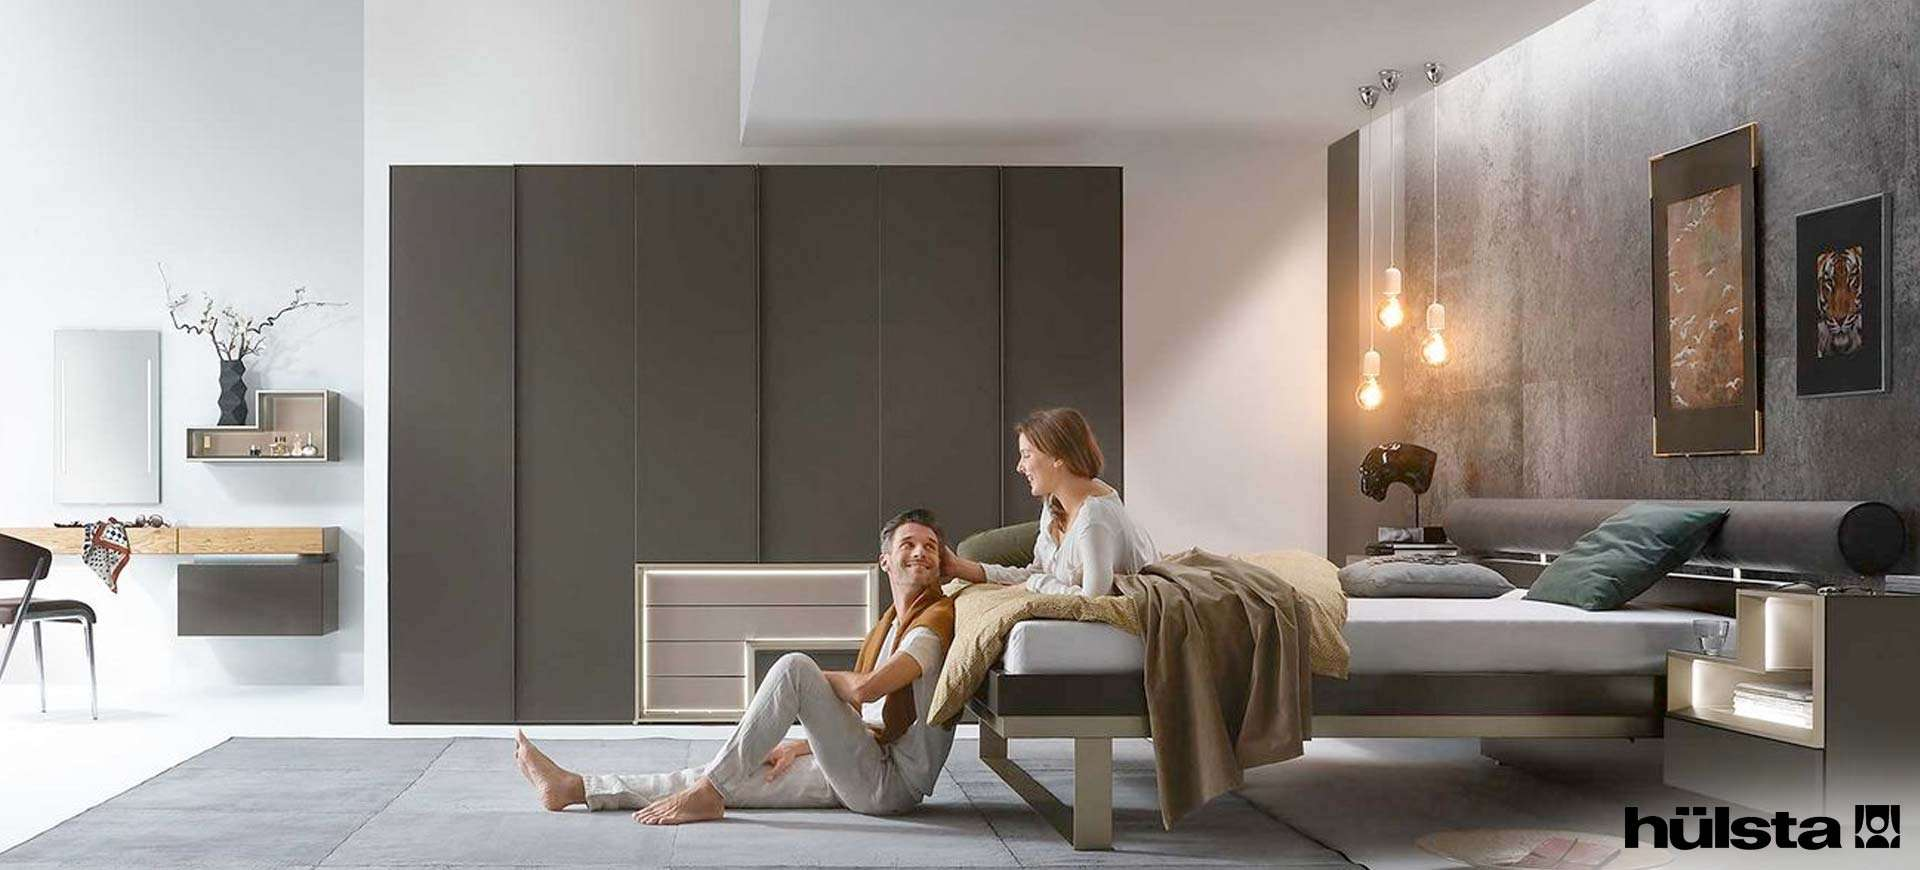 m belmarkt m nster h lsta m bel in m nster b darmstadt nahe dieburg und frankfurt a m. Black Bedroom Furniture Sets. Home Design Ideas